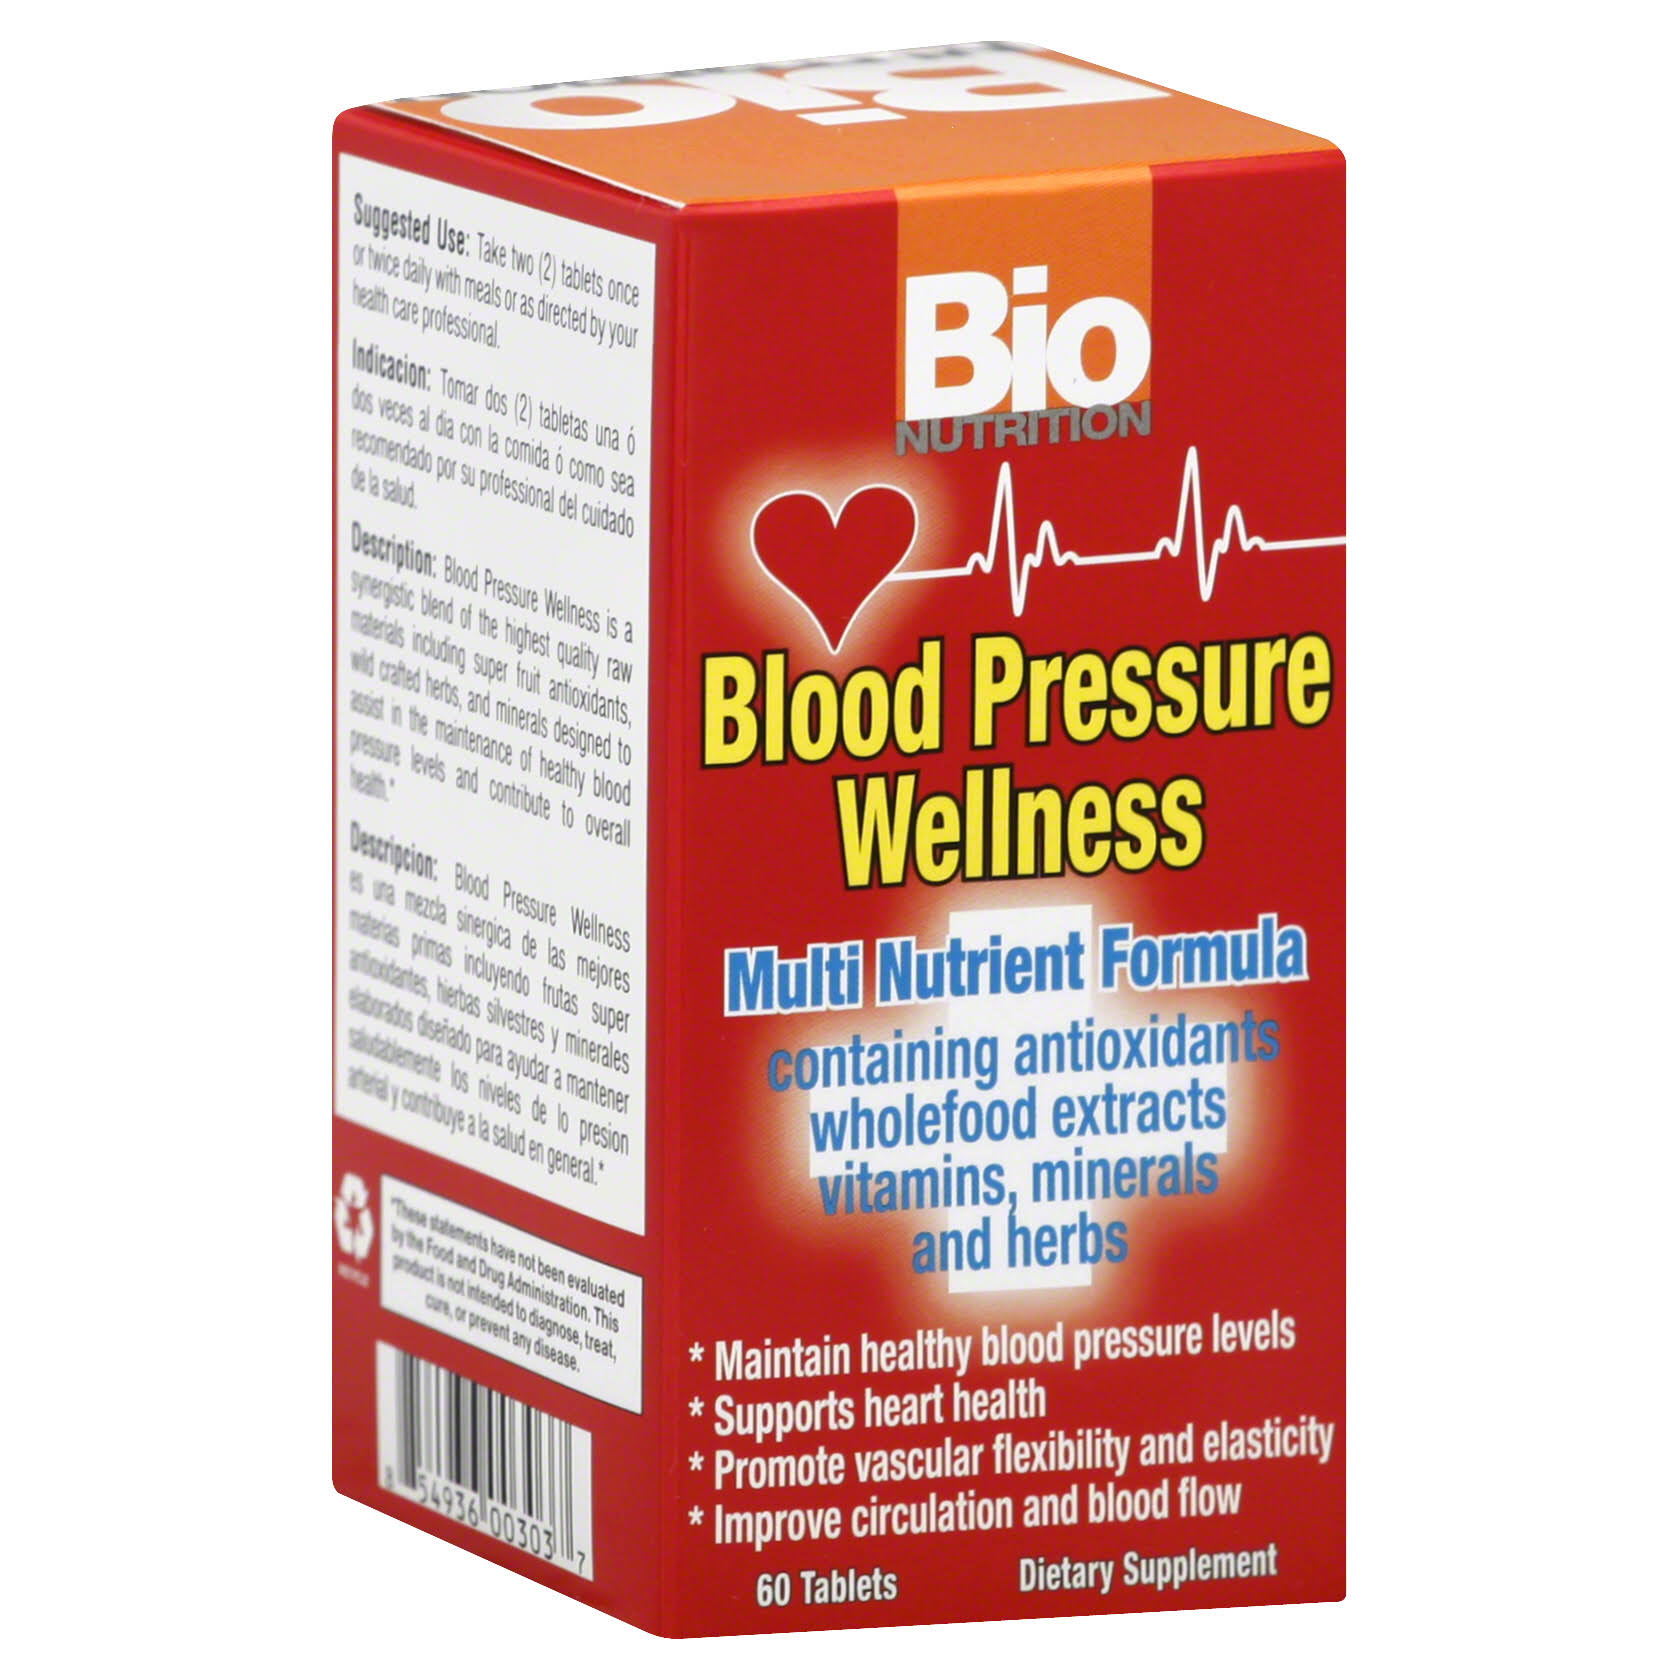 Bio Nutrition Blood Pressure Wellness Dietary Supplement - 60 Tablets